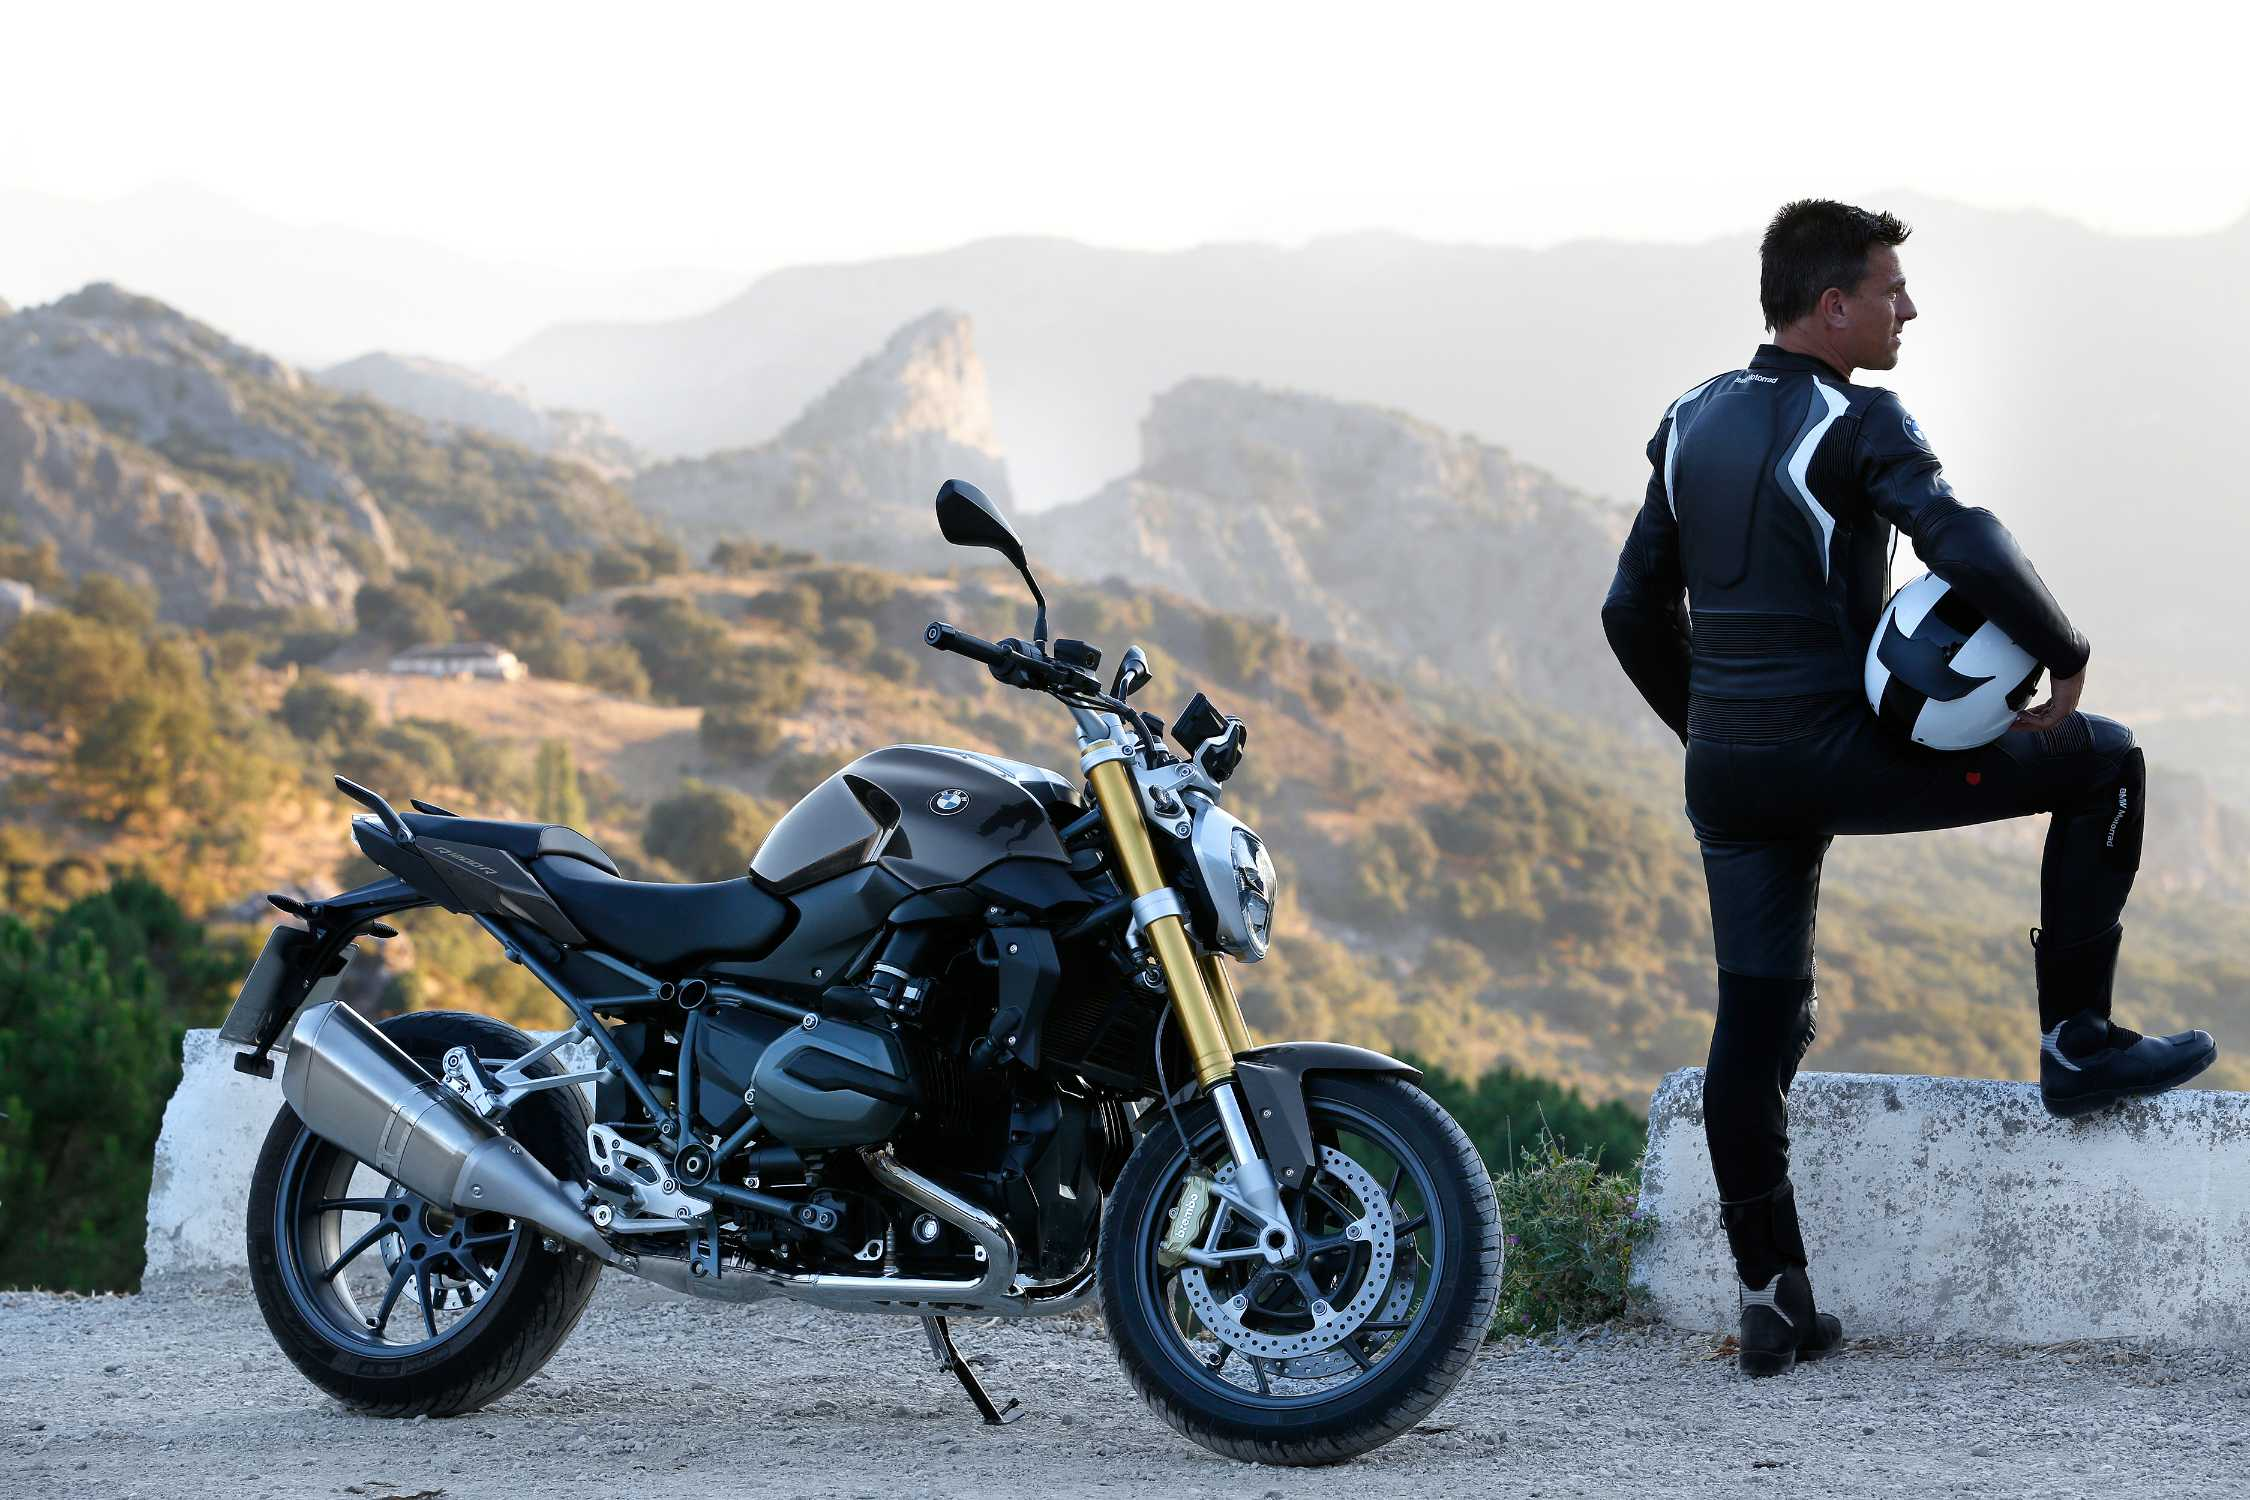 The New Bmw R 1200 R